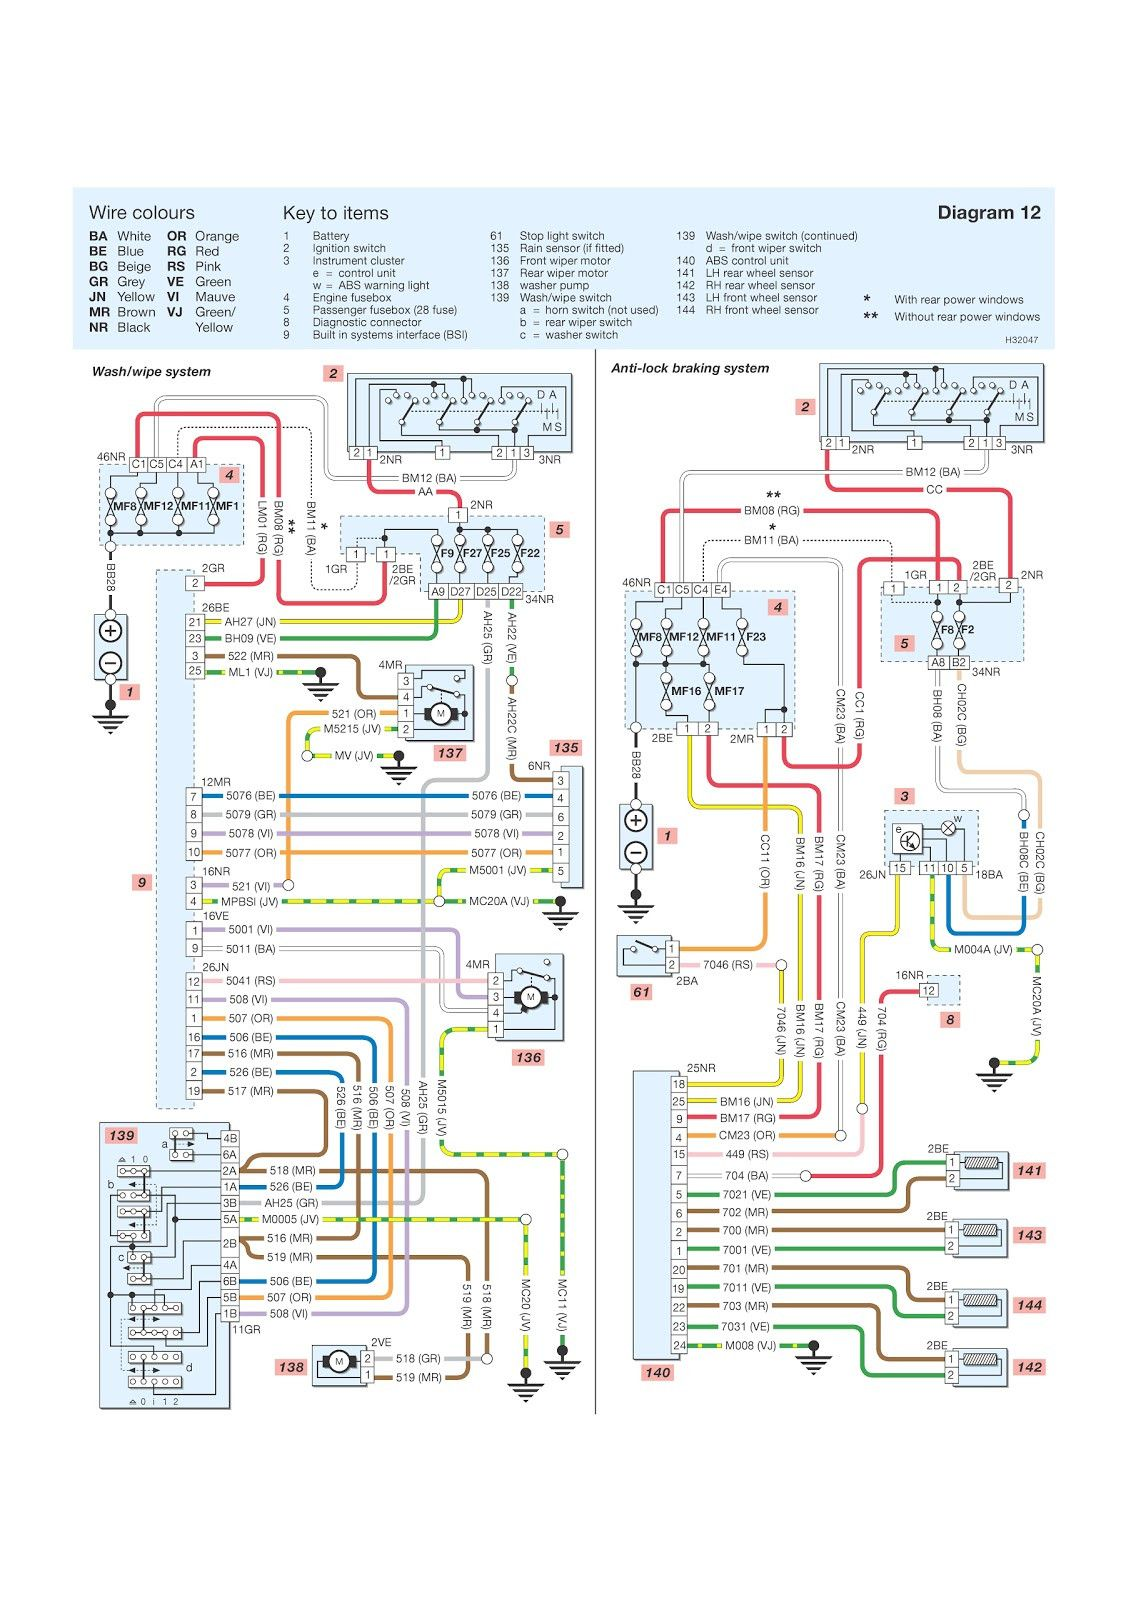 peugeot 406 wiring diagram free download trusted wiring diagrams u2022 rh caribbeanblues co peugeot boxer wiring diagram pdf peugeot boxer wiring diagram download